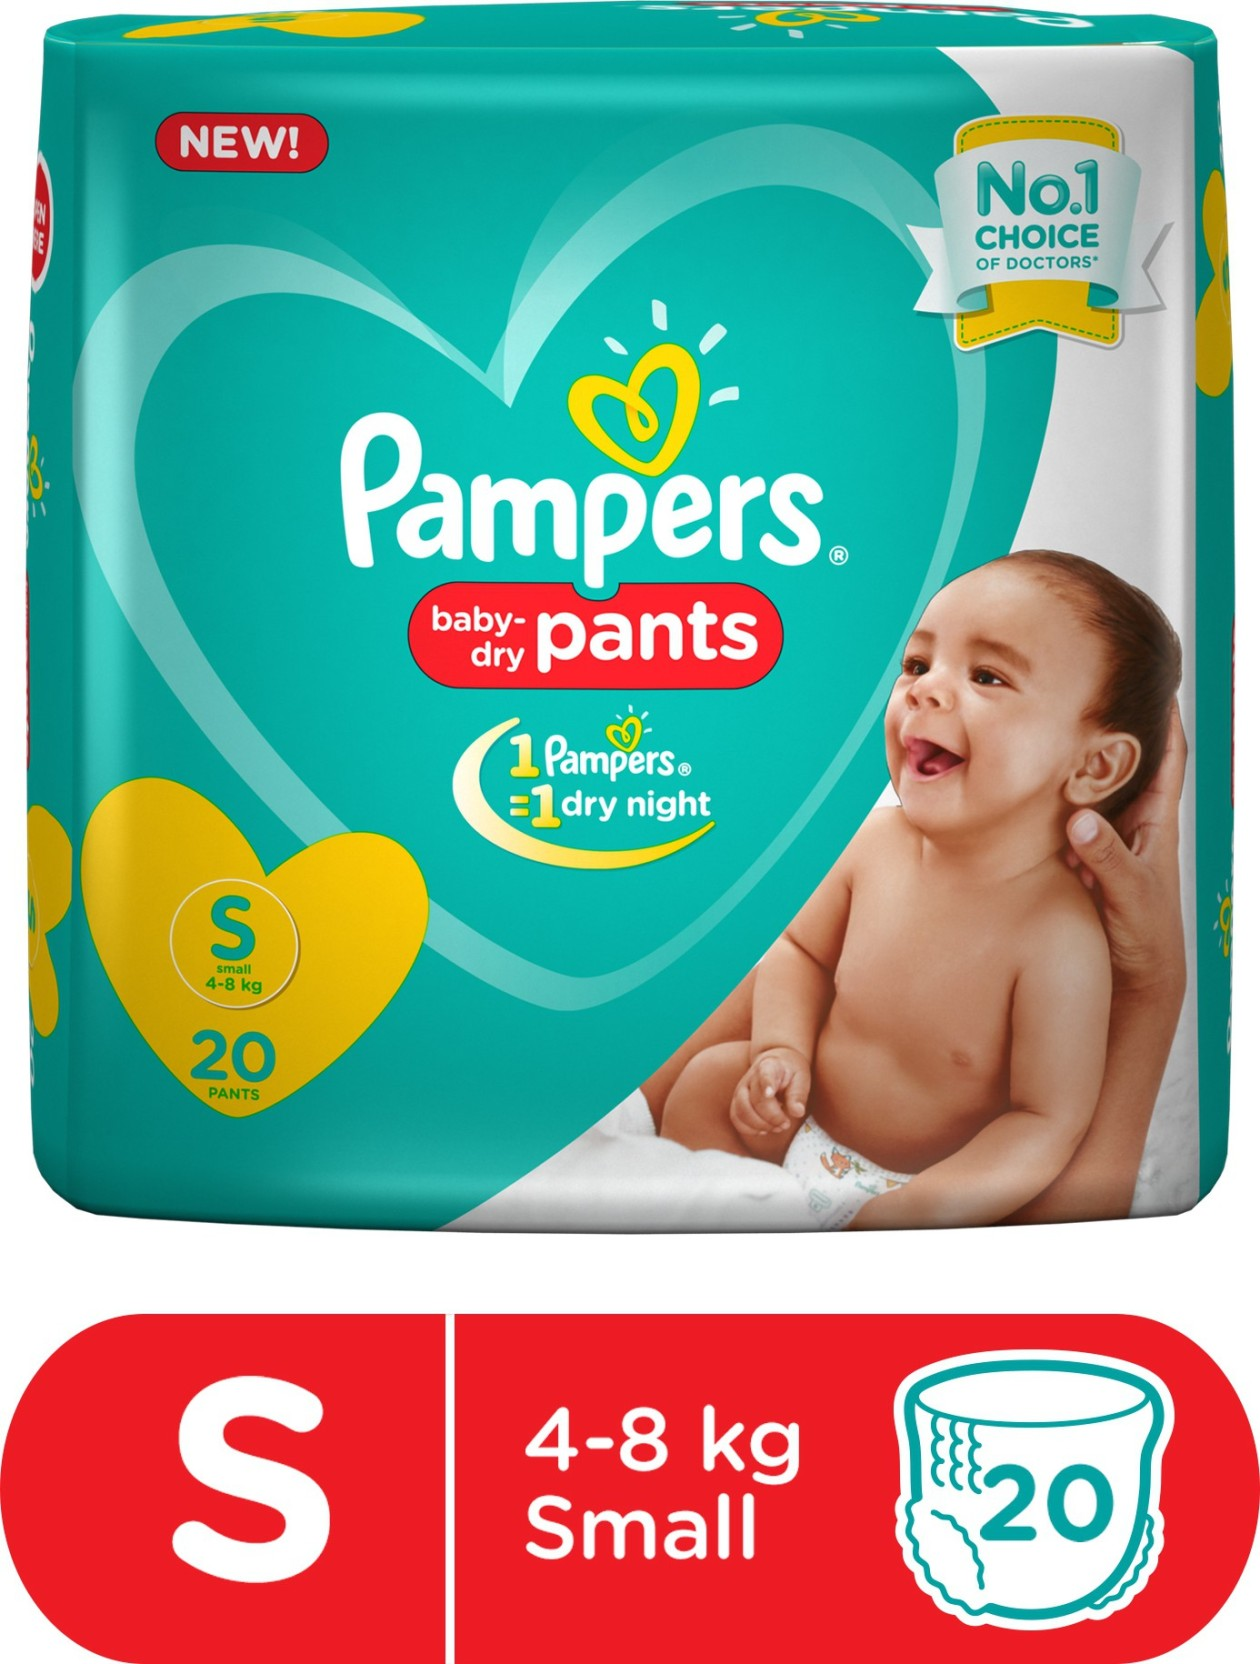 Pampers Pants Diapers S Buy 20 Pant For Babies Mamypoko Extra Soft Xl 30 Girls Add To Cart